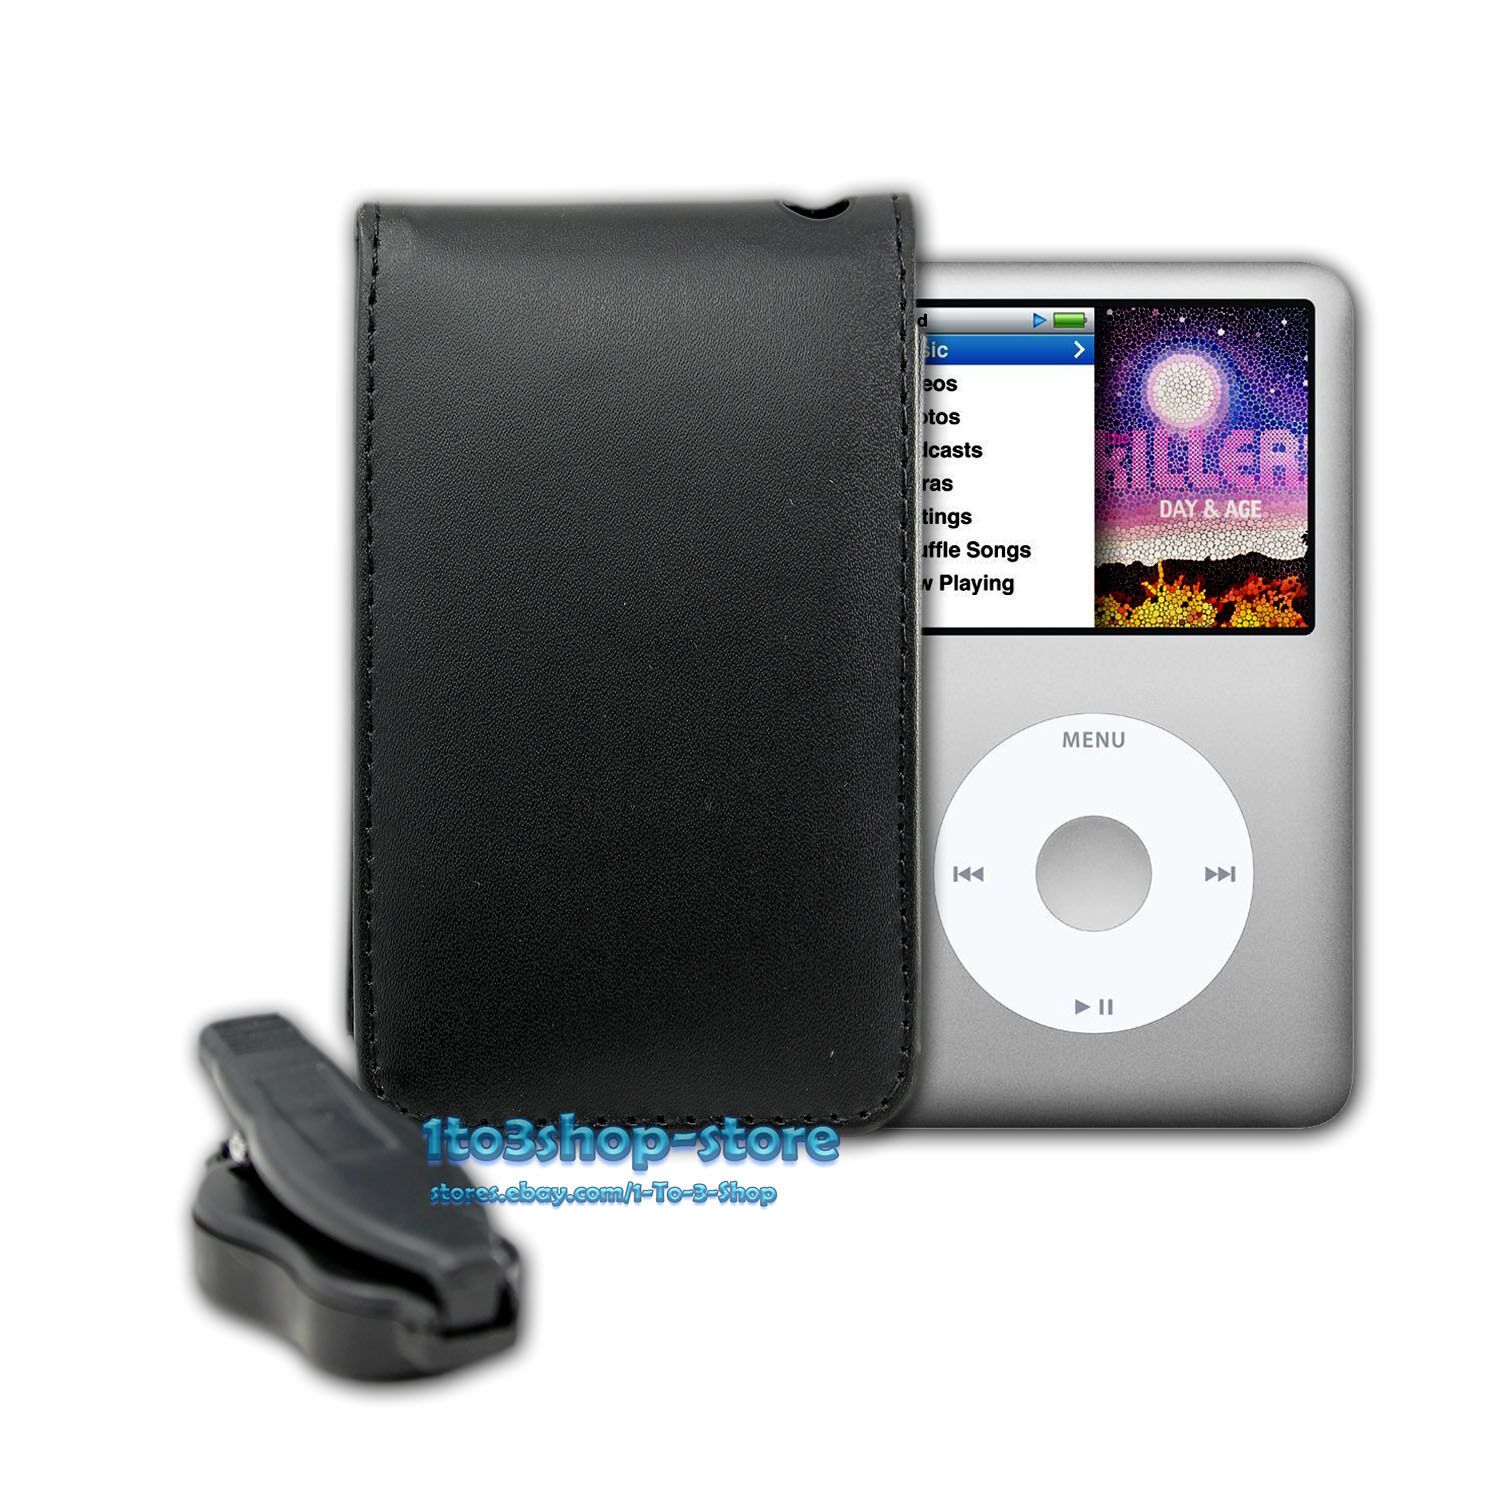 leather sleeve pouch case w belt clip for ipod classic. Black Bedroom Furniture Sets. Home Design Ideas